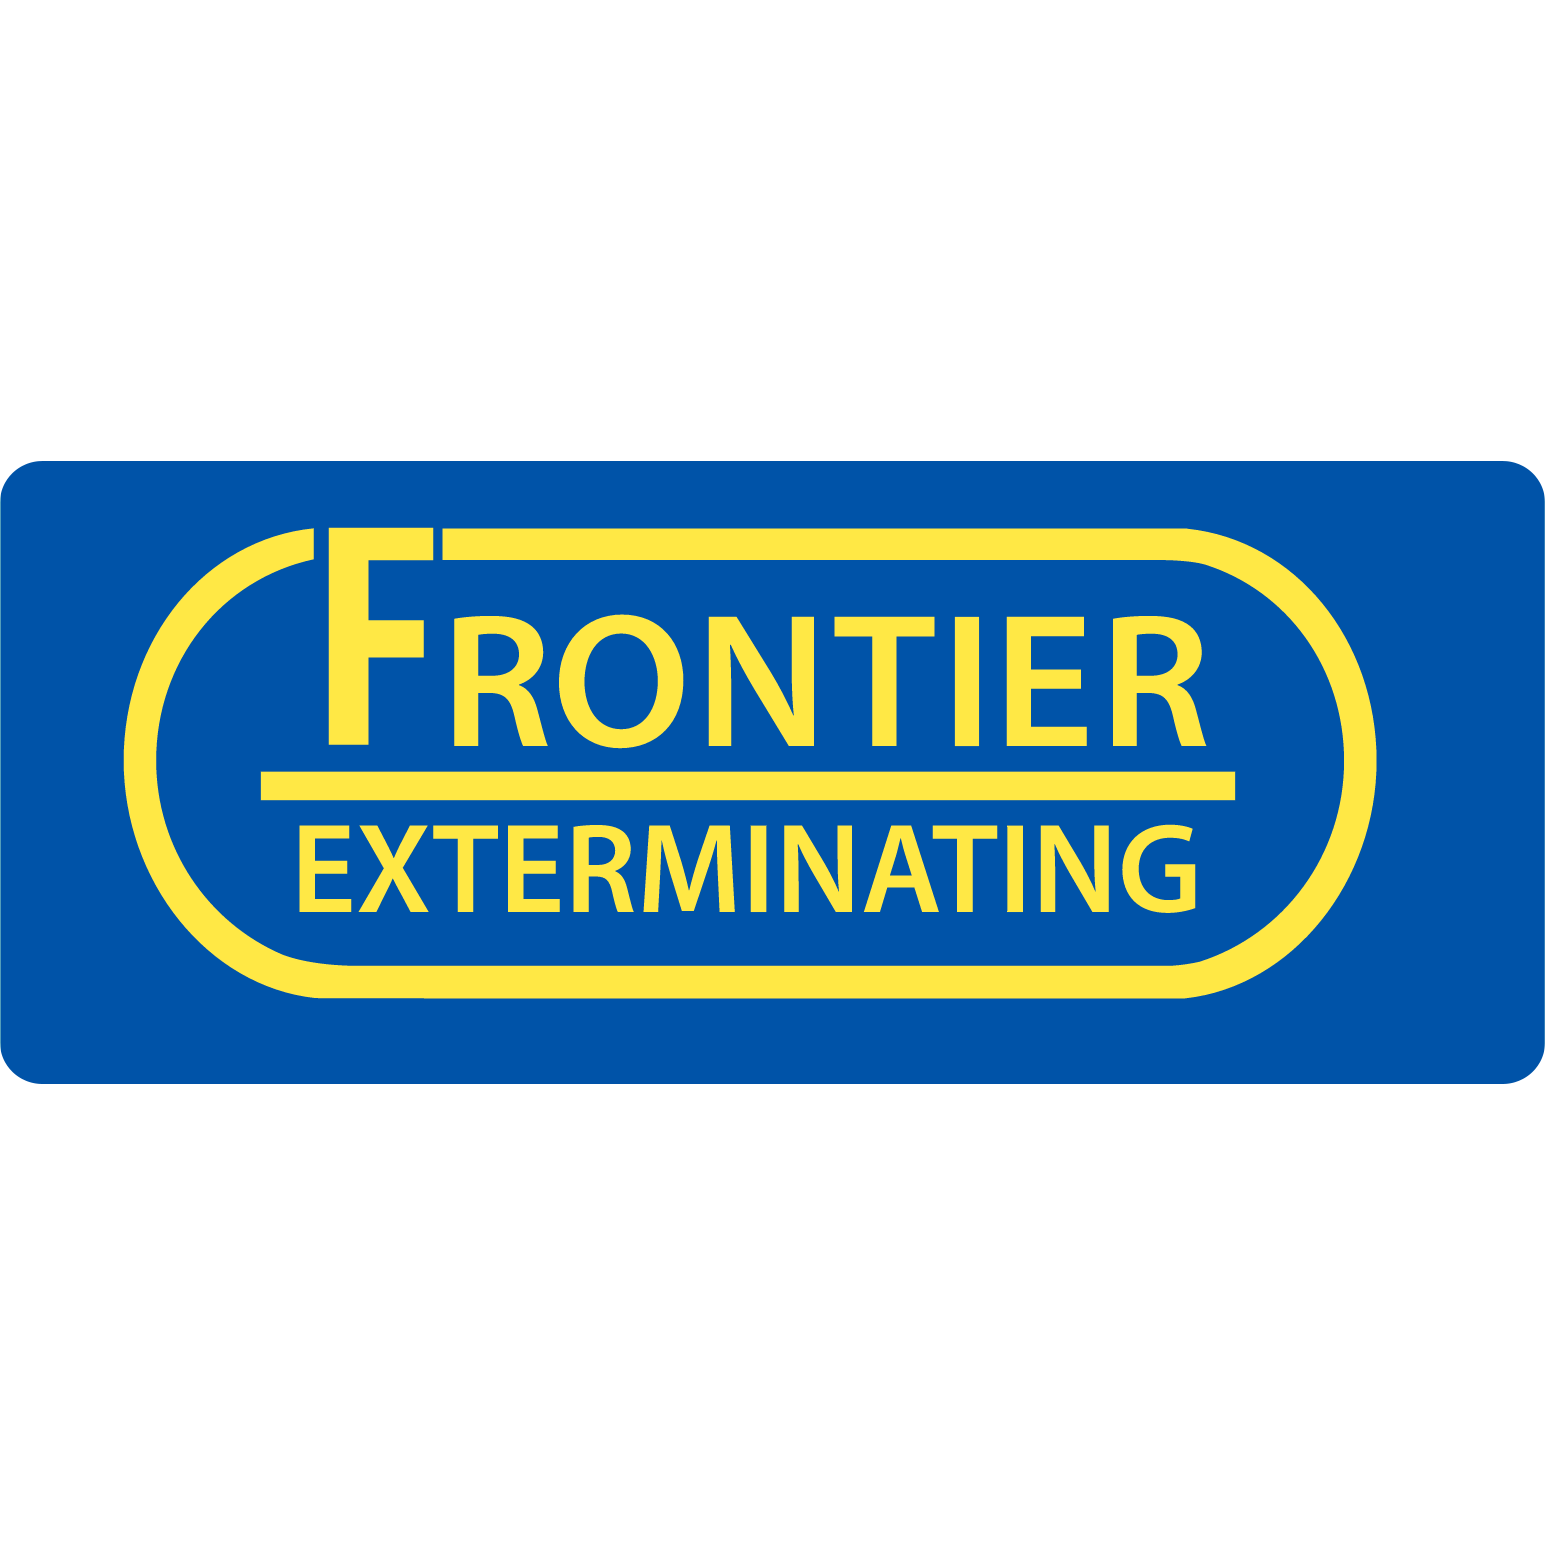 Frontier Exterminating Company Inc. - Katy, TX - Pest & Animal Control